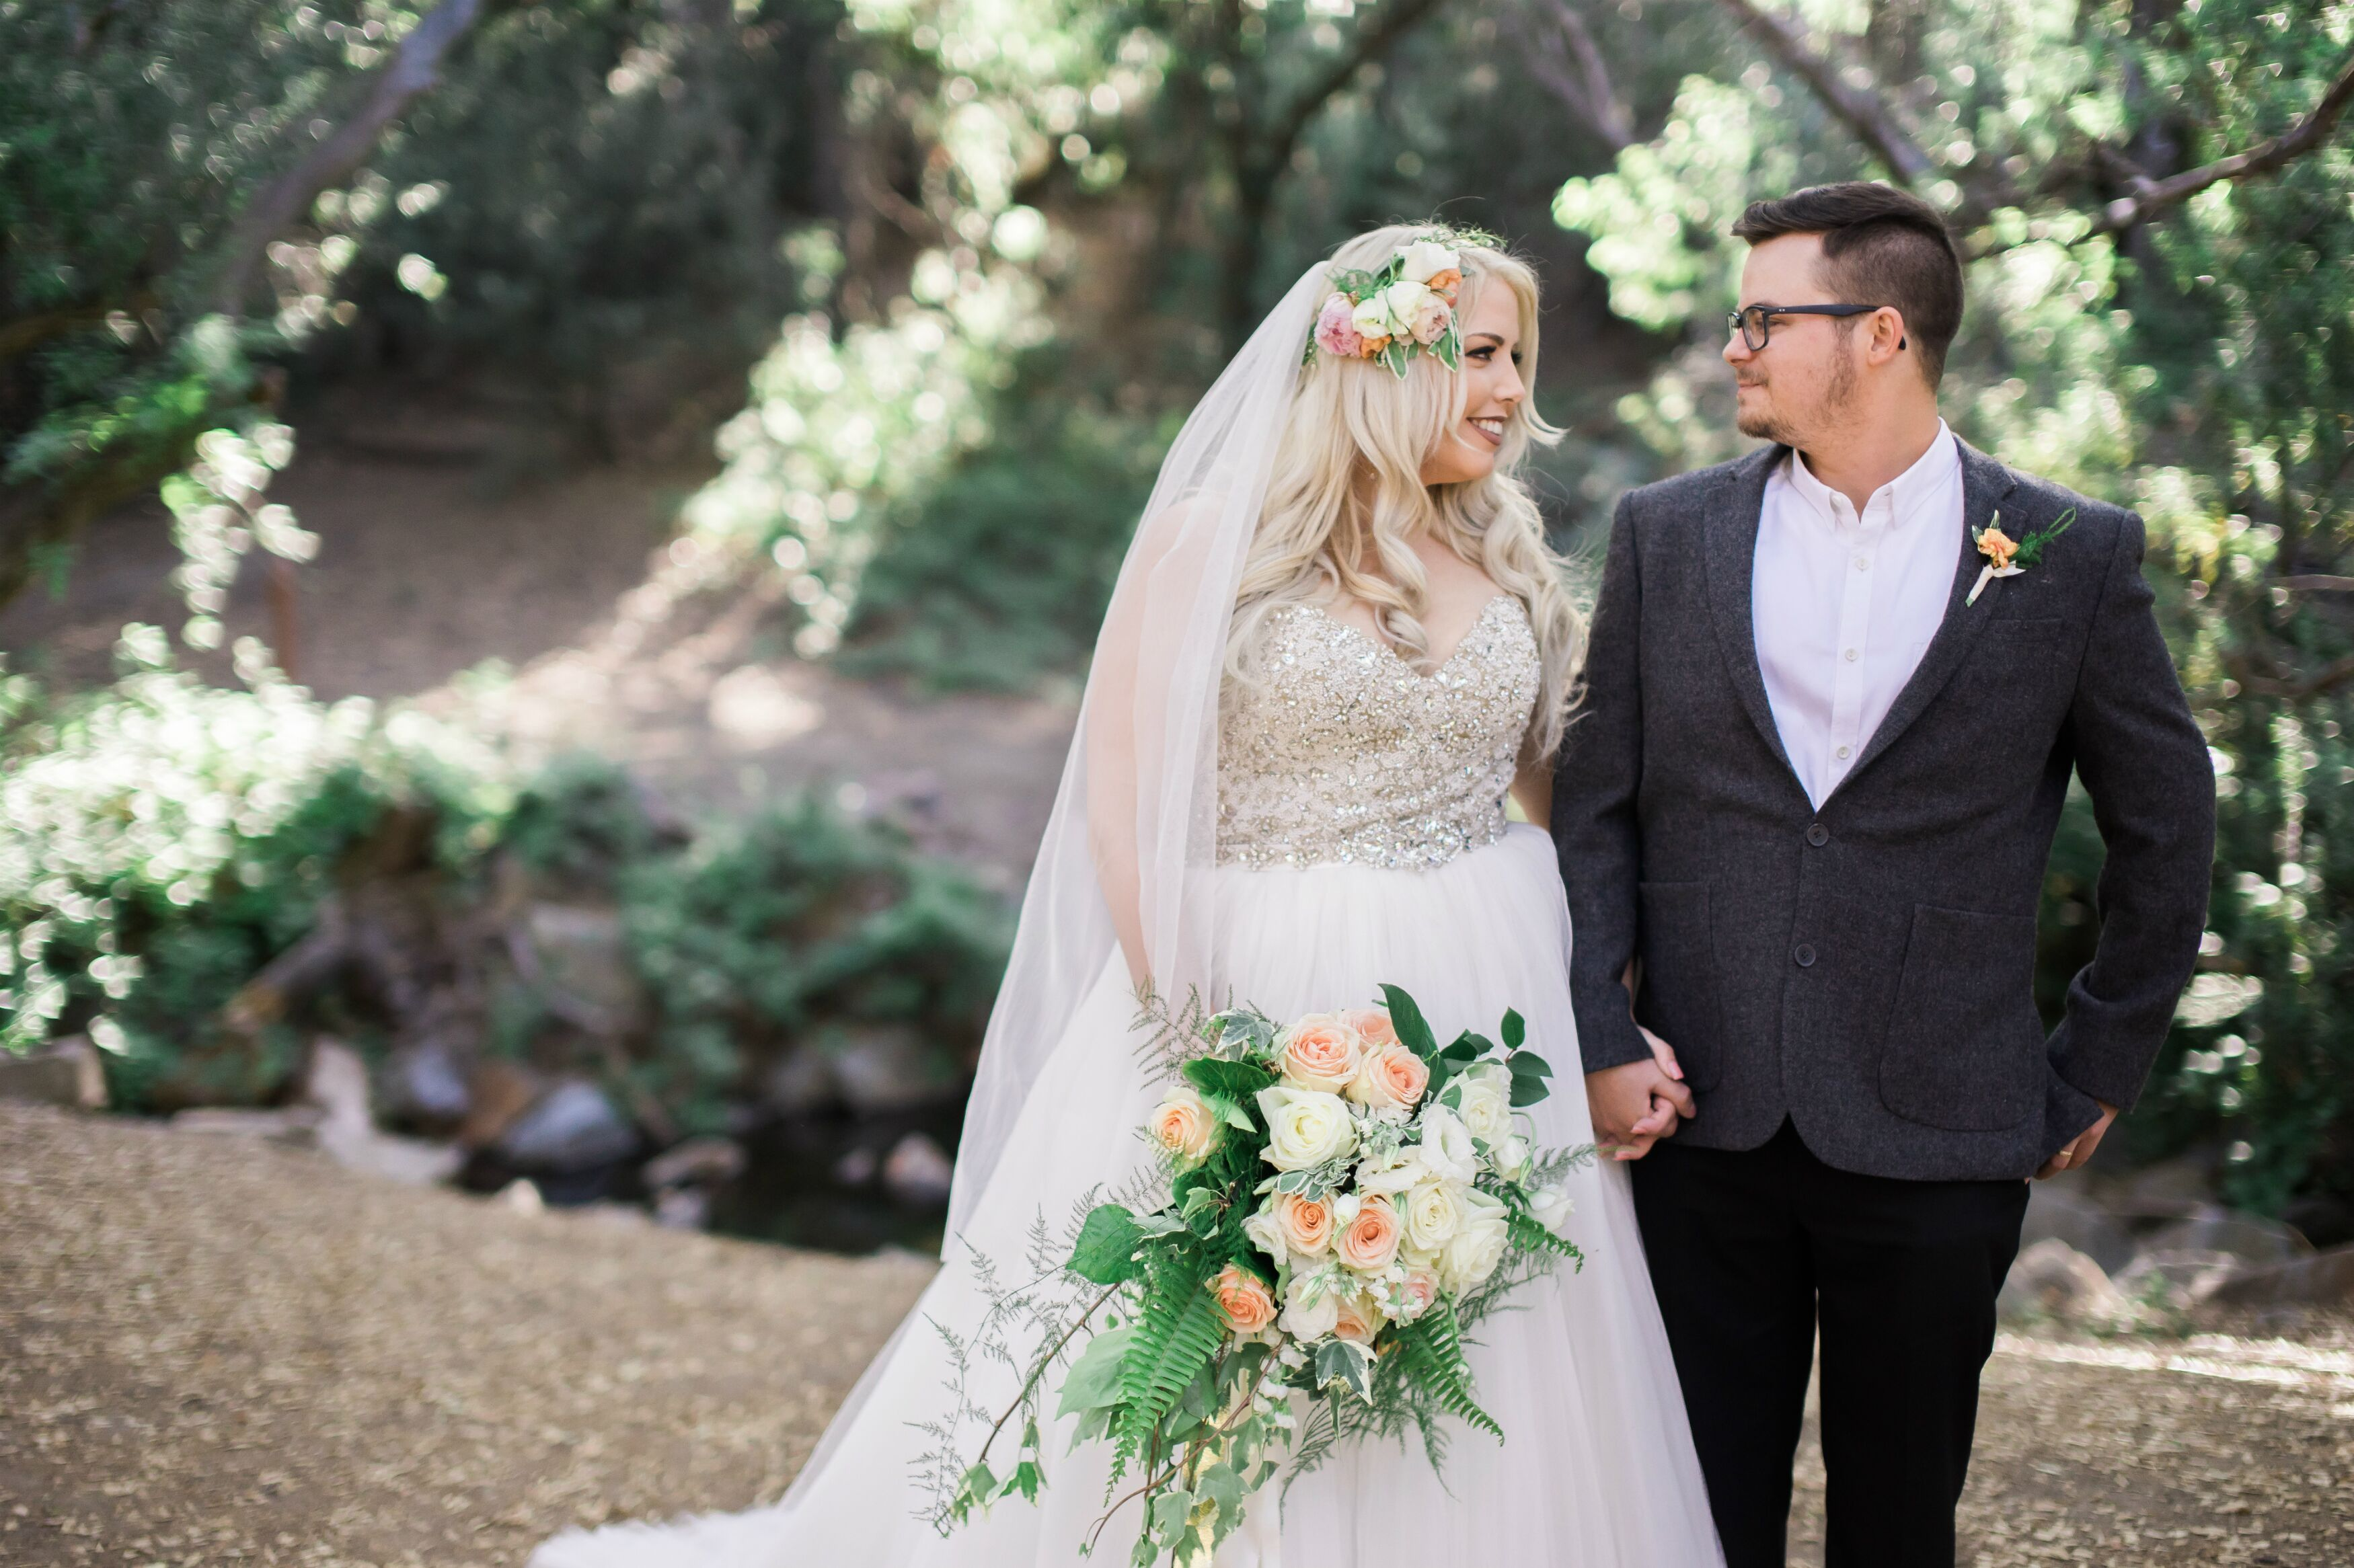 A Whimsical Woodland Wedding At The Torrance Woman S Club In